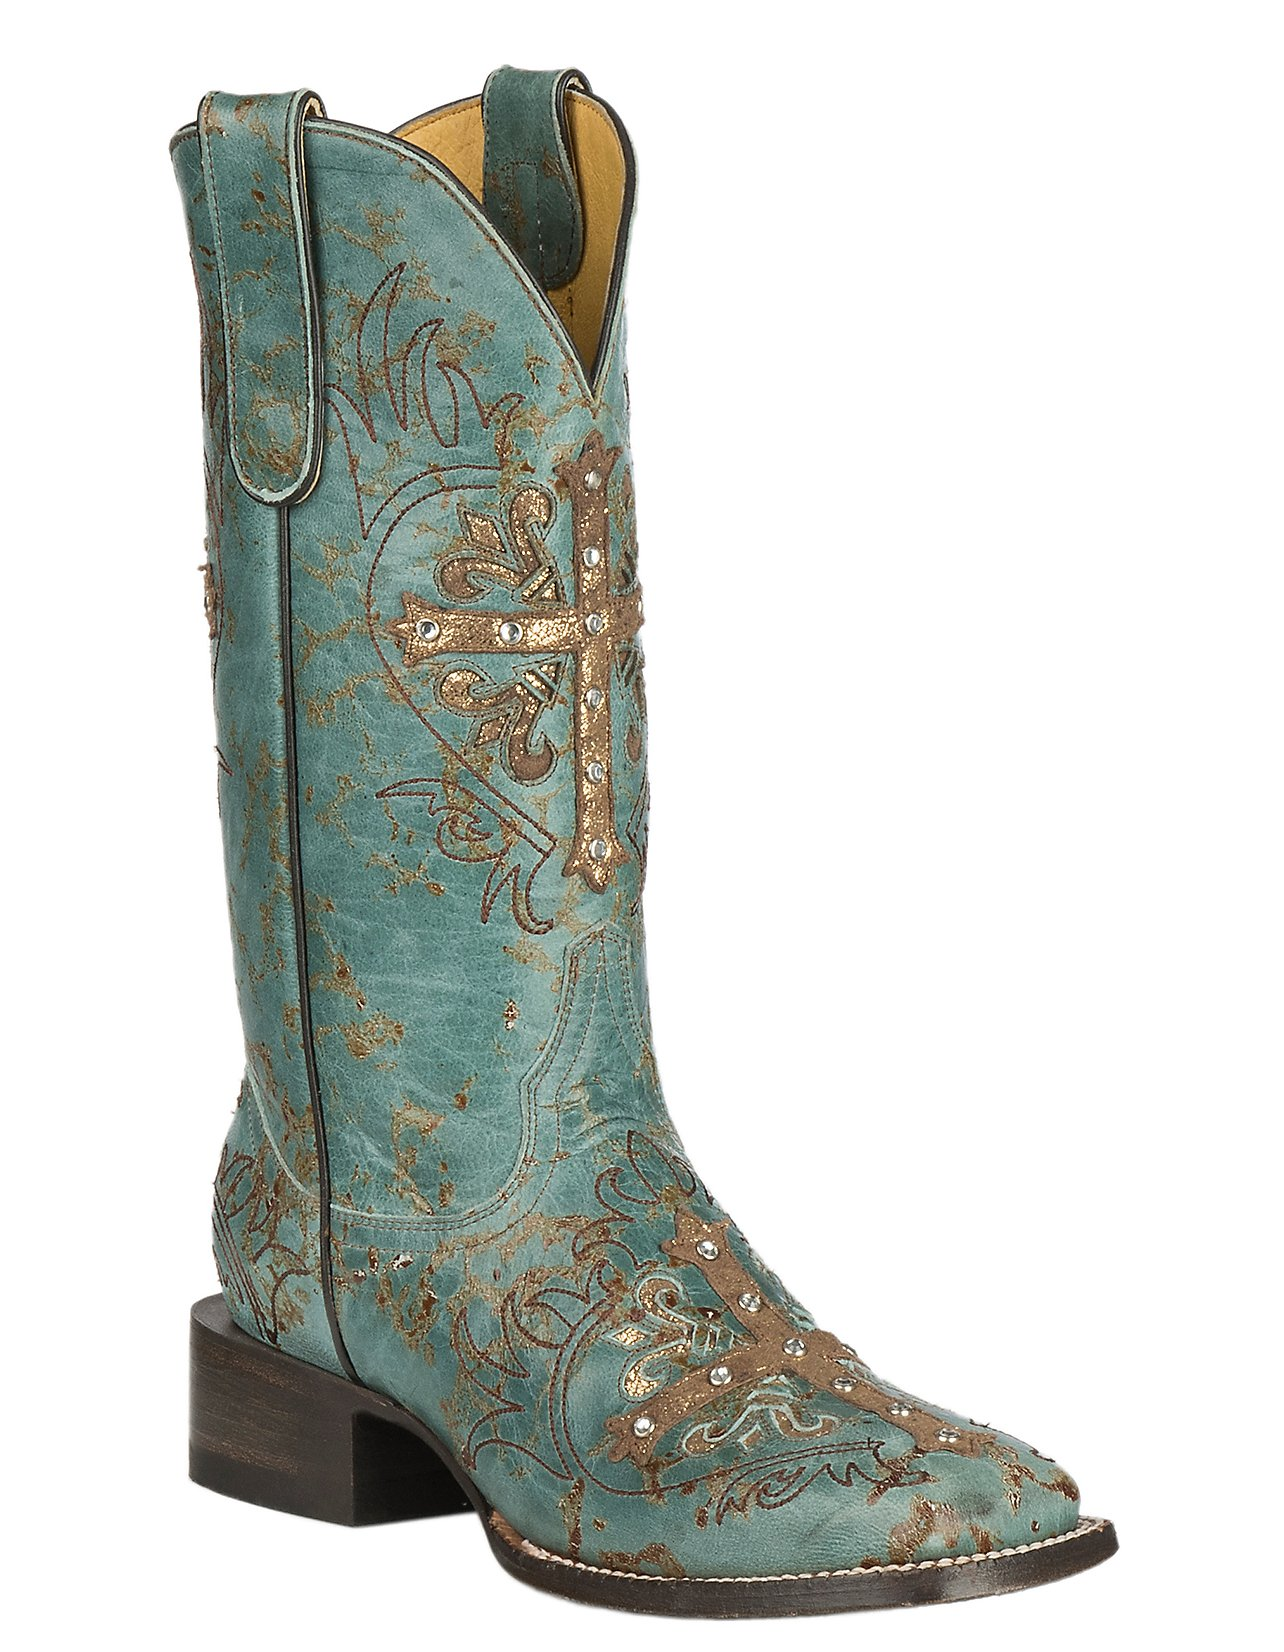 Cavender\u0027s by Old Gringo Women\u0027s Turquoise Fango Goat w/ Cross Overlay  Western Square Toe Boots